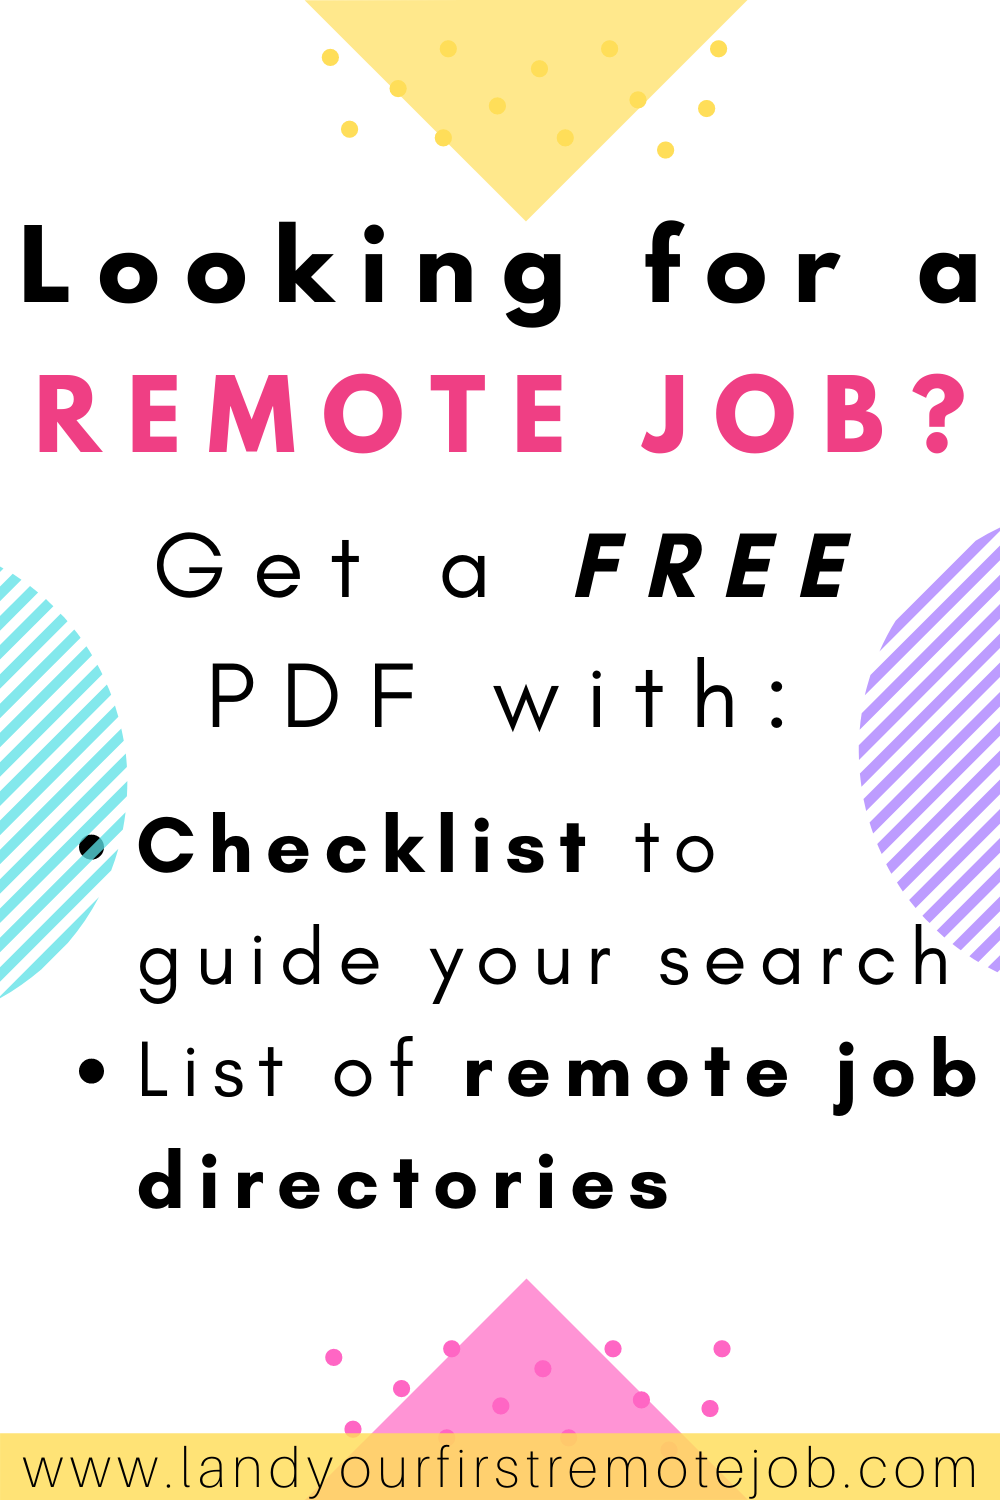 Are You Looking for a Remote Job? Get a FREE PDF Checklist